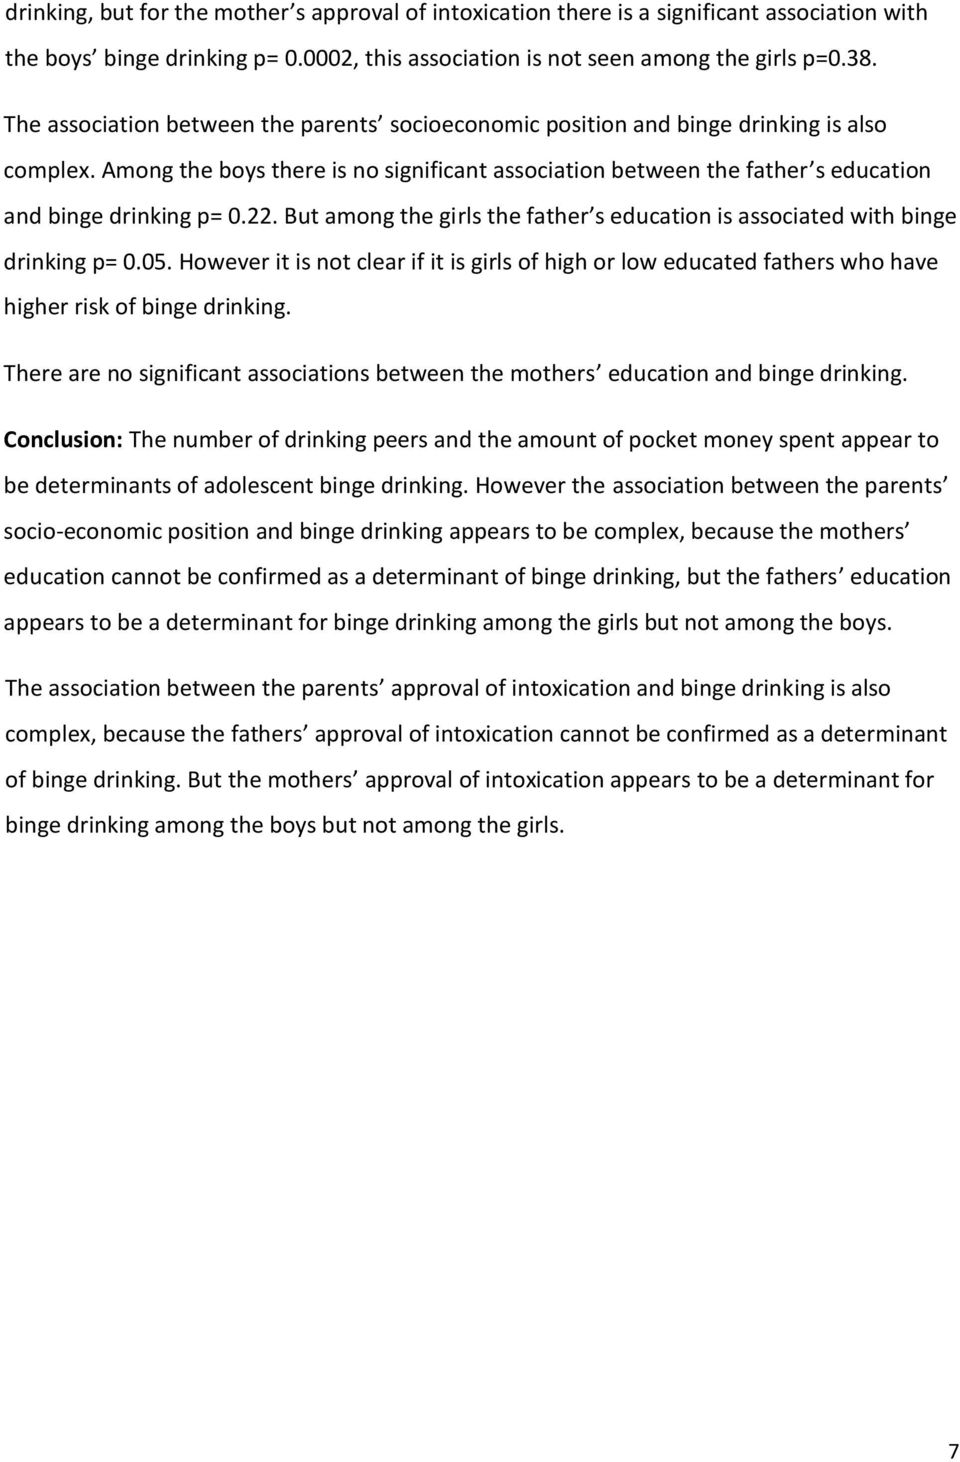 Among the boys there is no significant association between the father s education and binge drinking p= 0.22. But among the girls the father s education is associated with binge drinking p= 0.05.